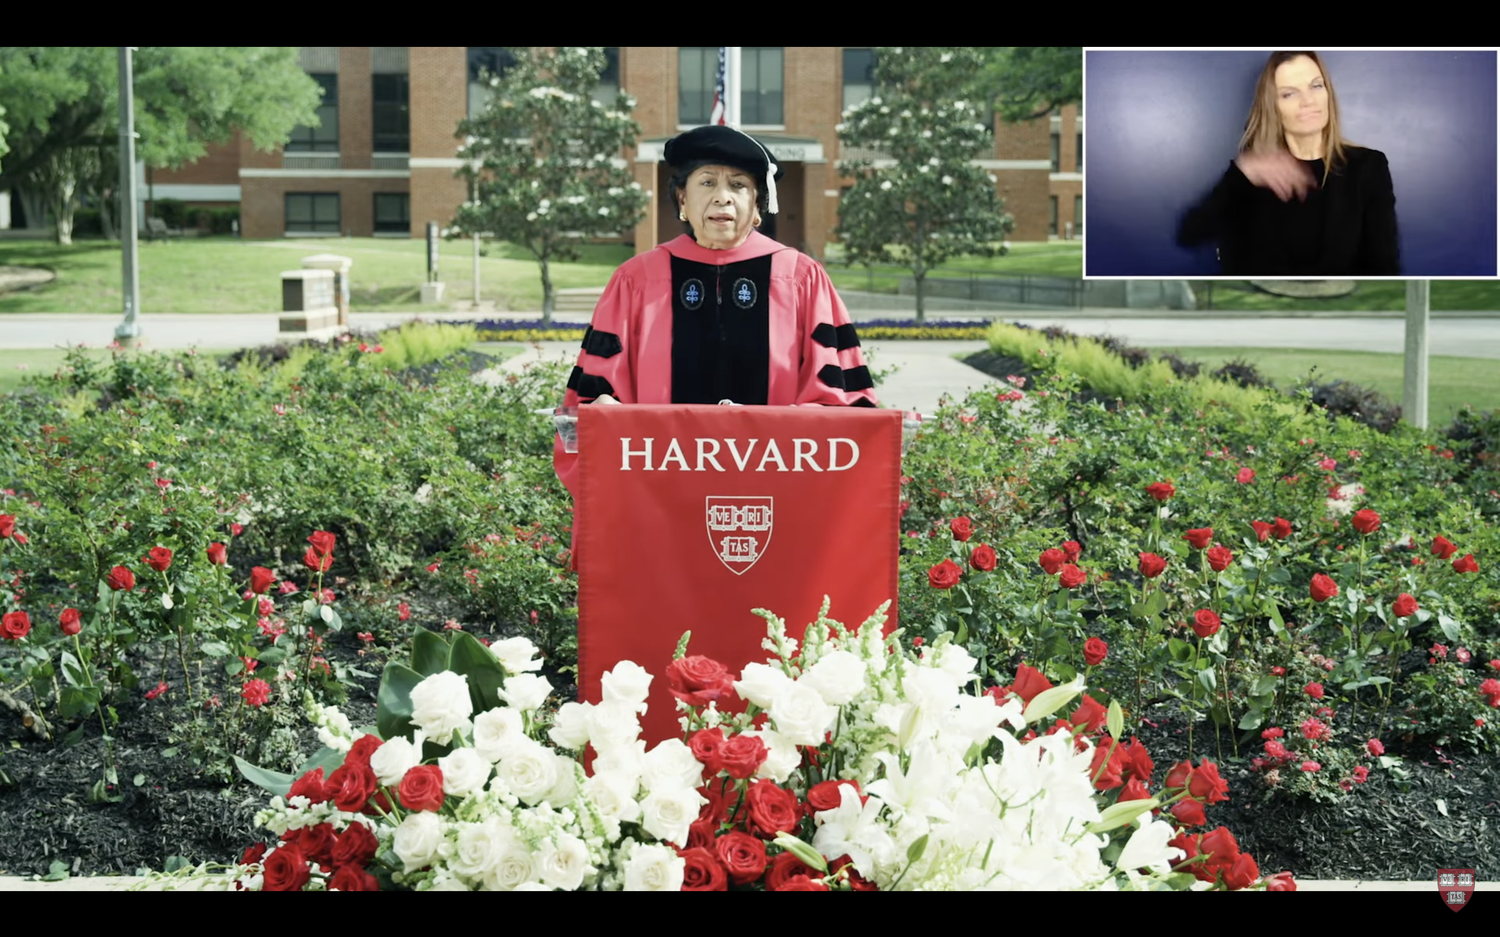 """In the ceremony's principal address, Ruth J. Simmons, the president of Prairie View A&M University, drew on the story of her segregated upbringing in Houston and called on Harvard and its graduates """"to be a force for inclusion."""""""